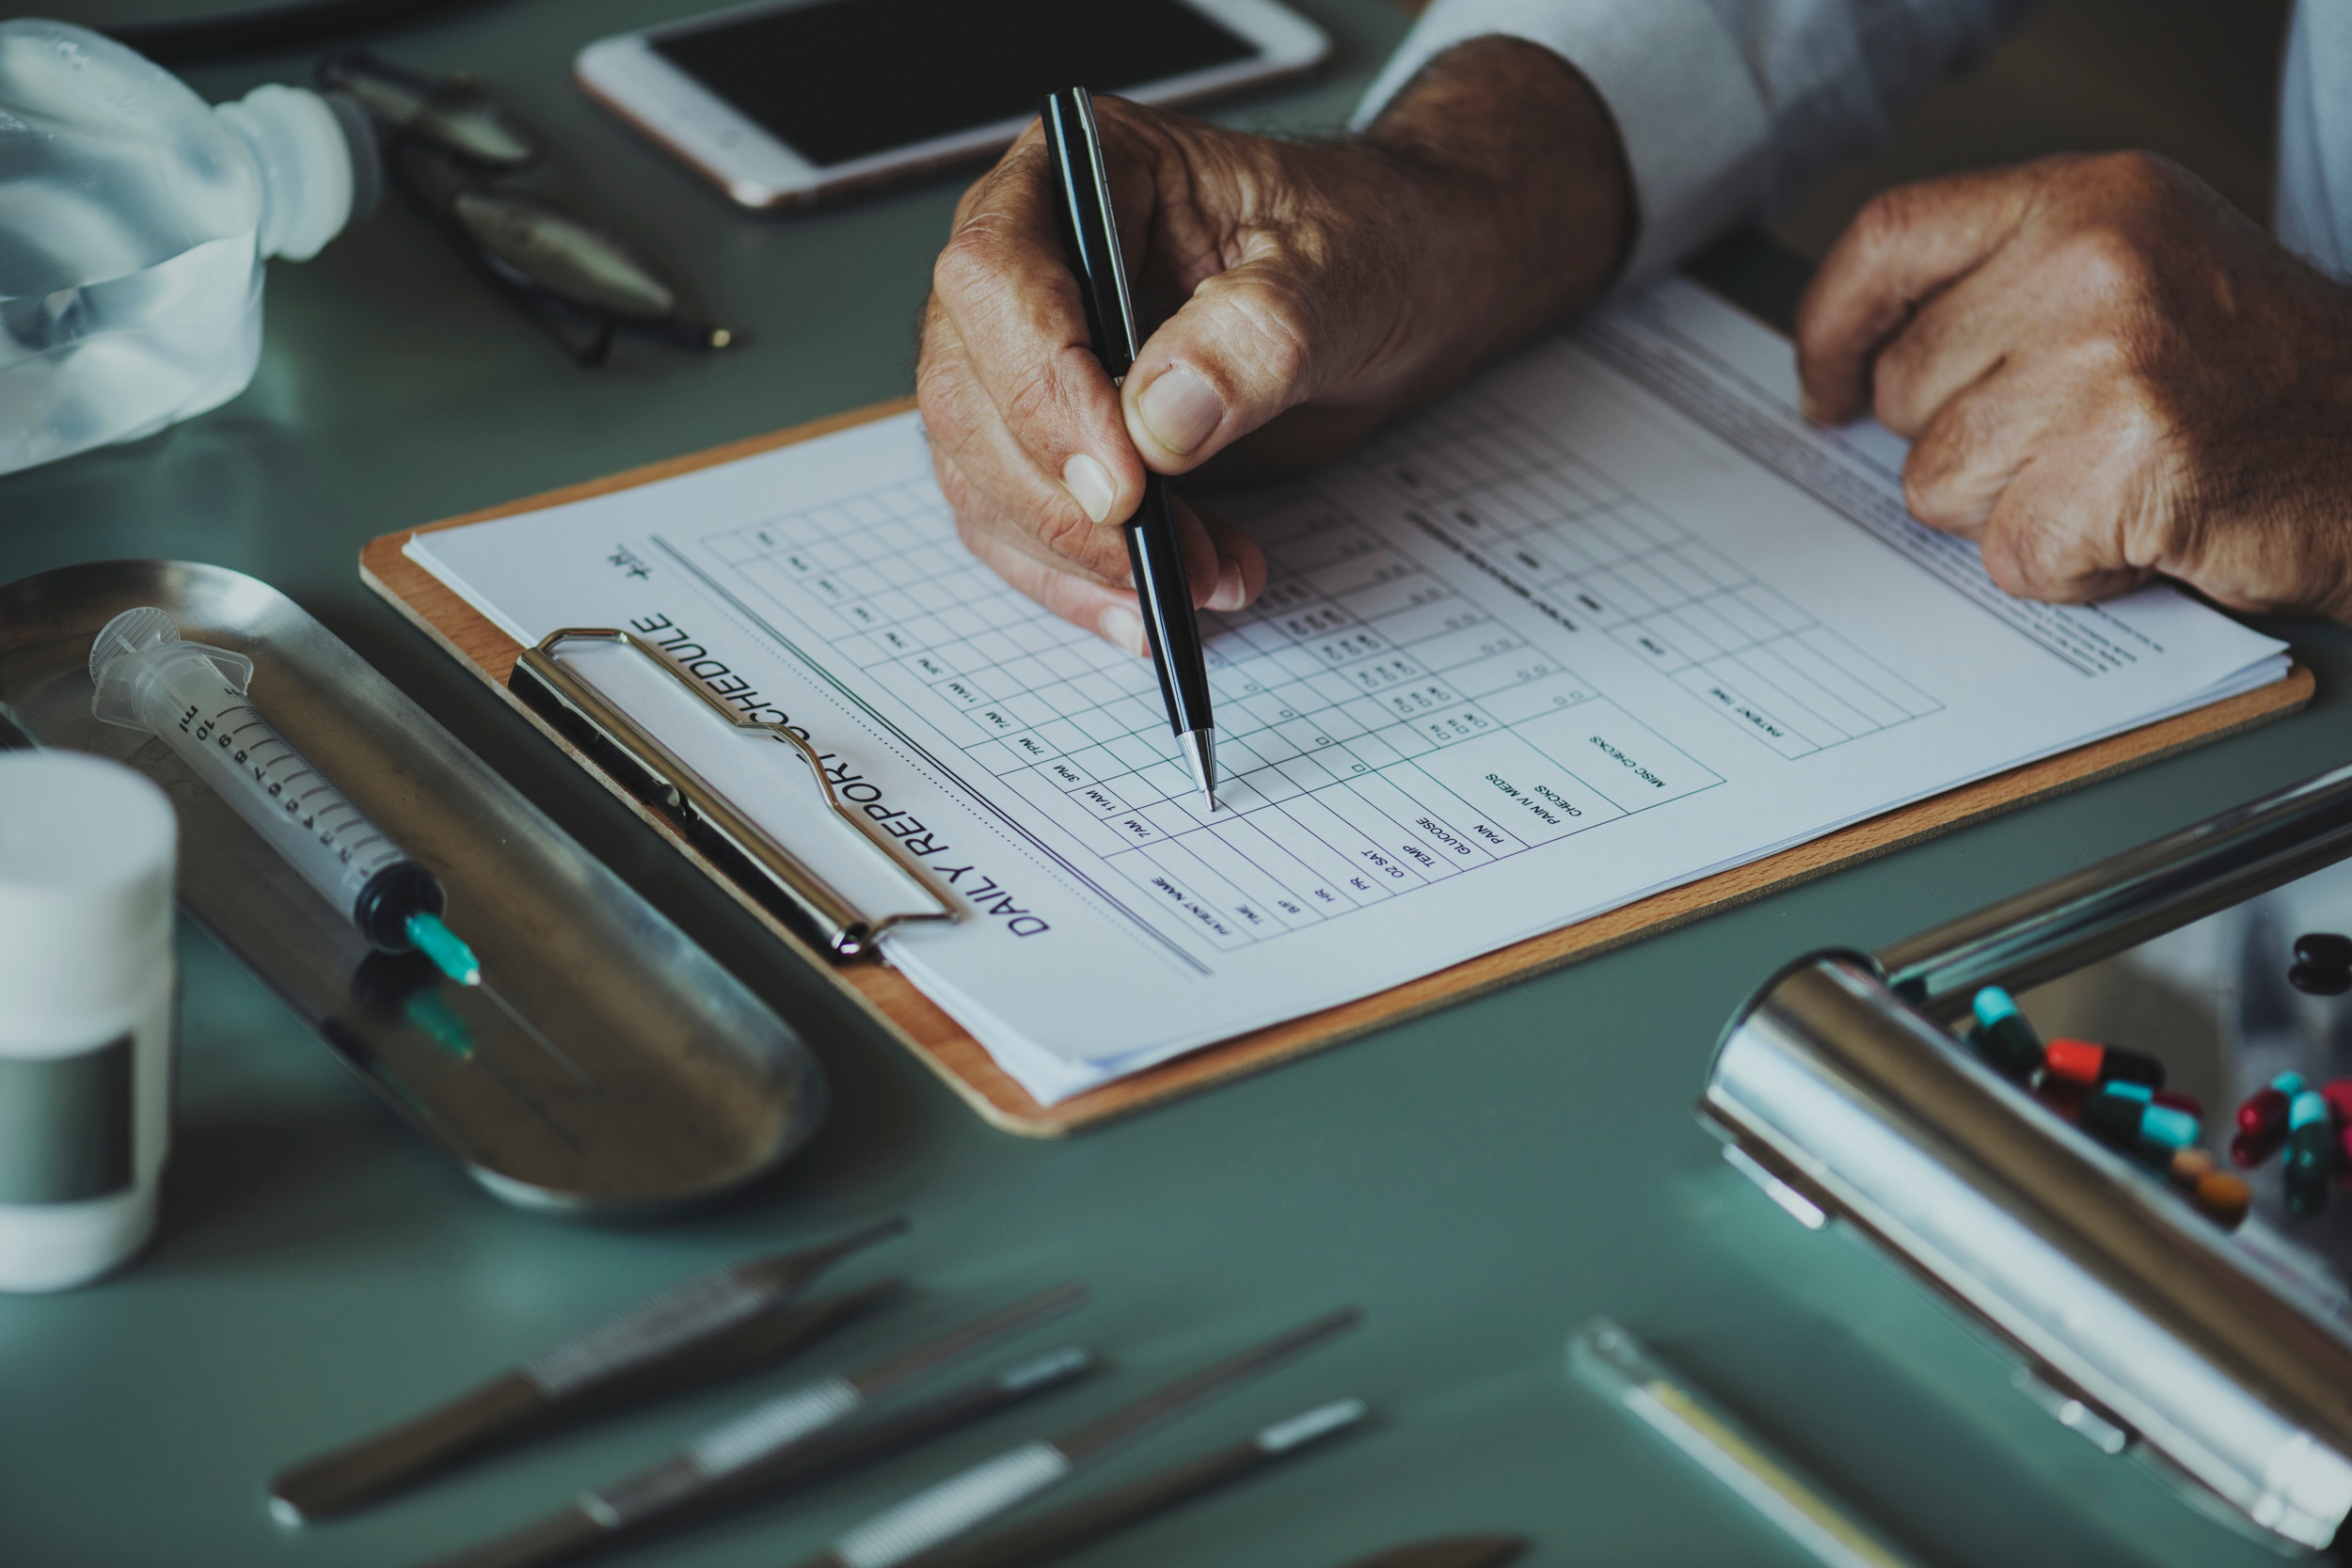 Man signing medical form with a pen